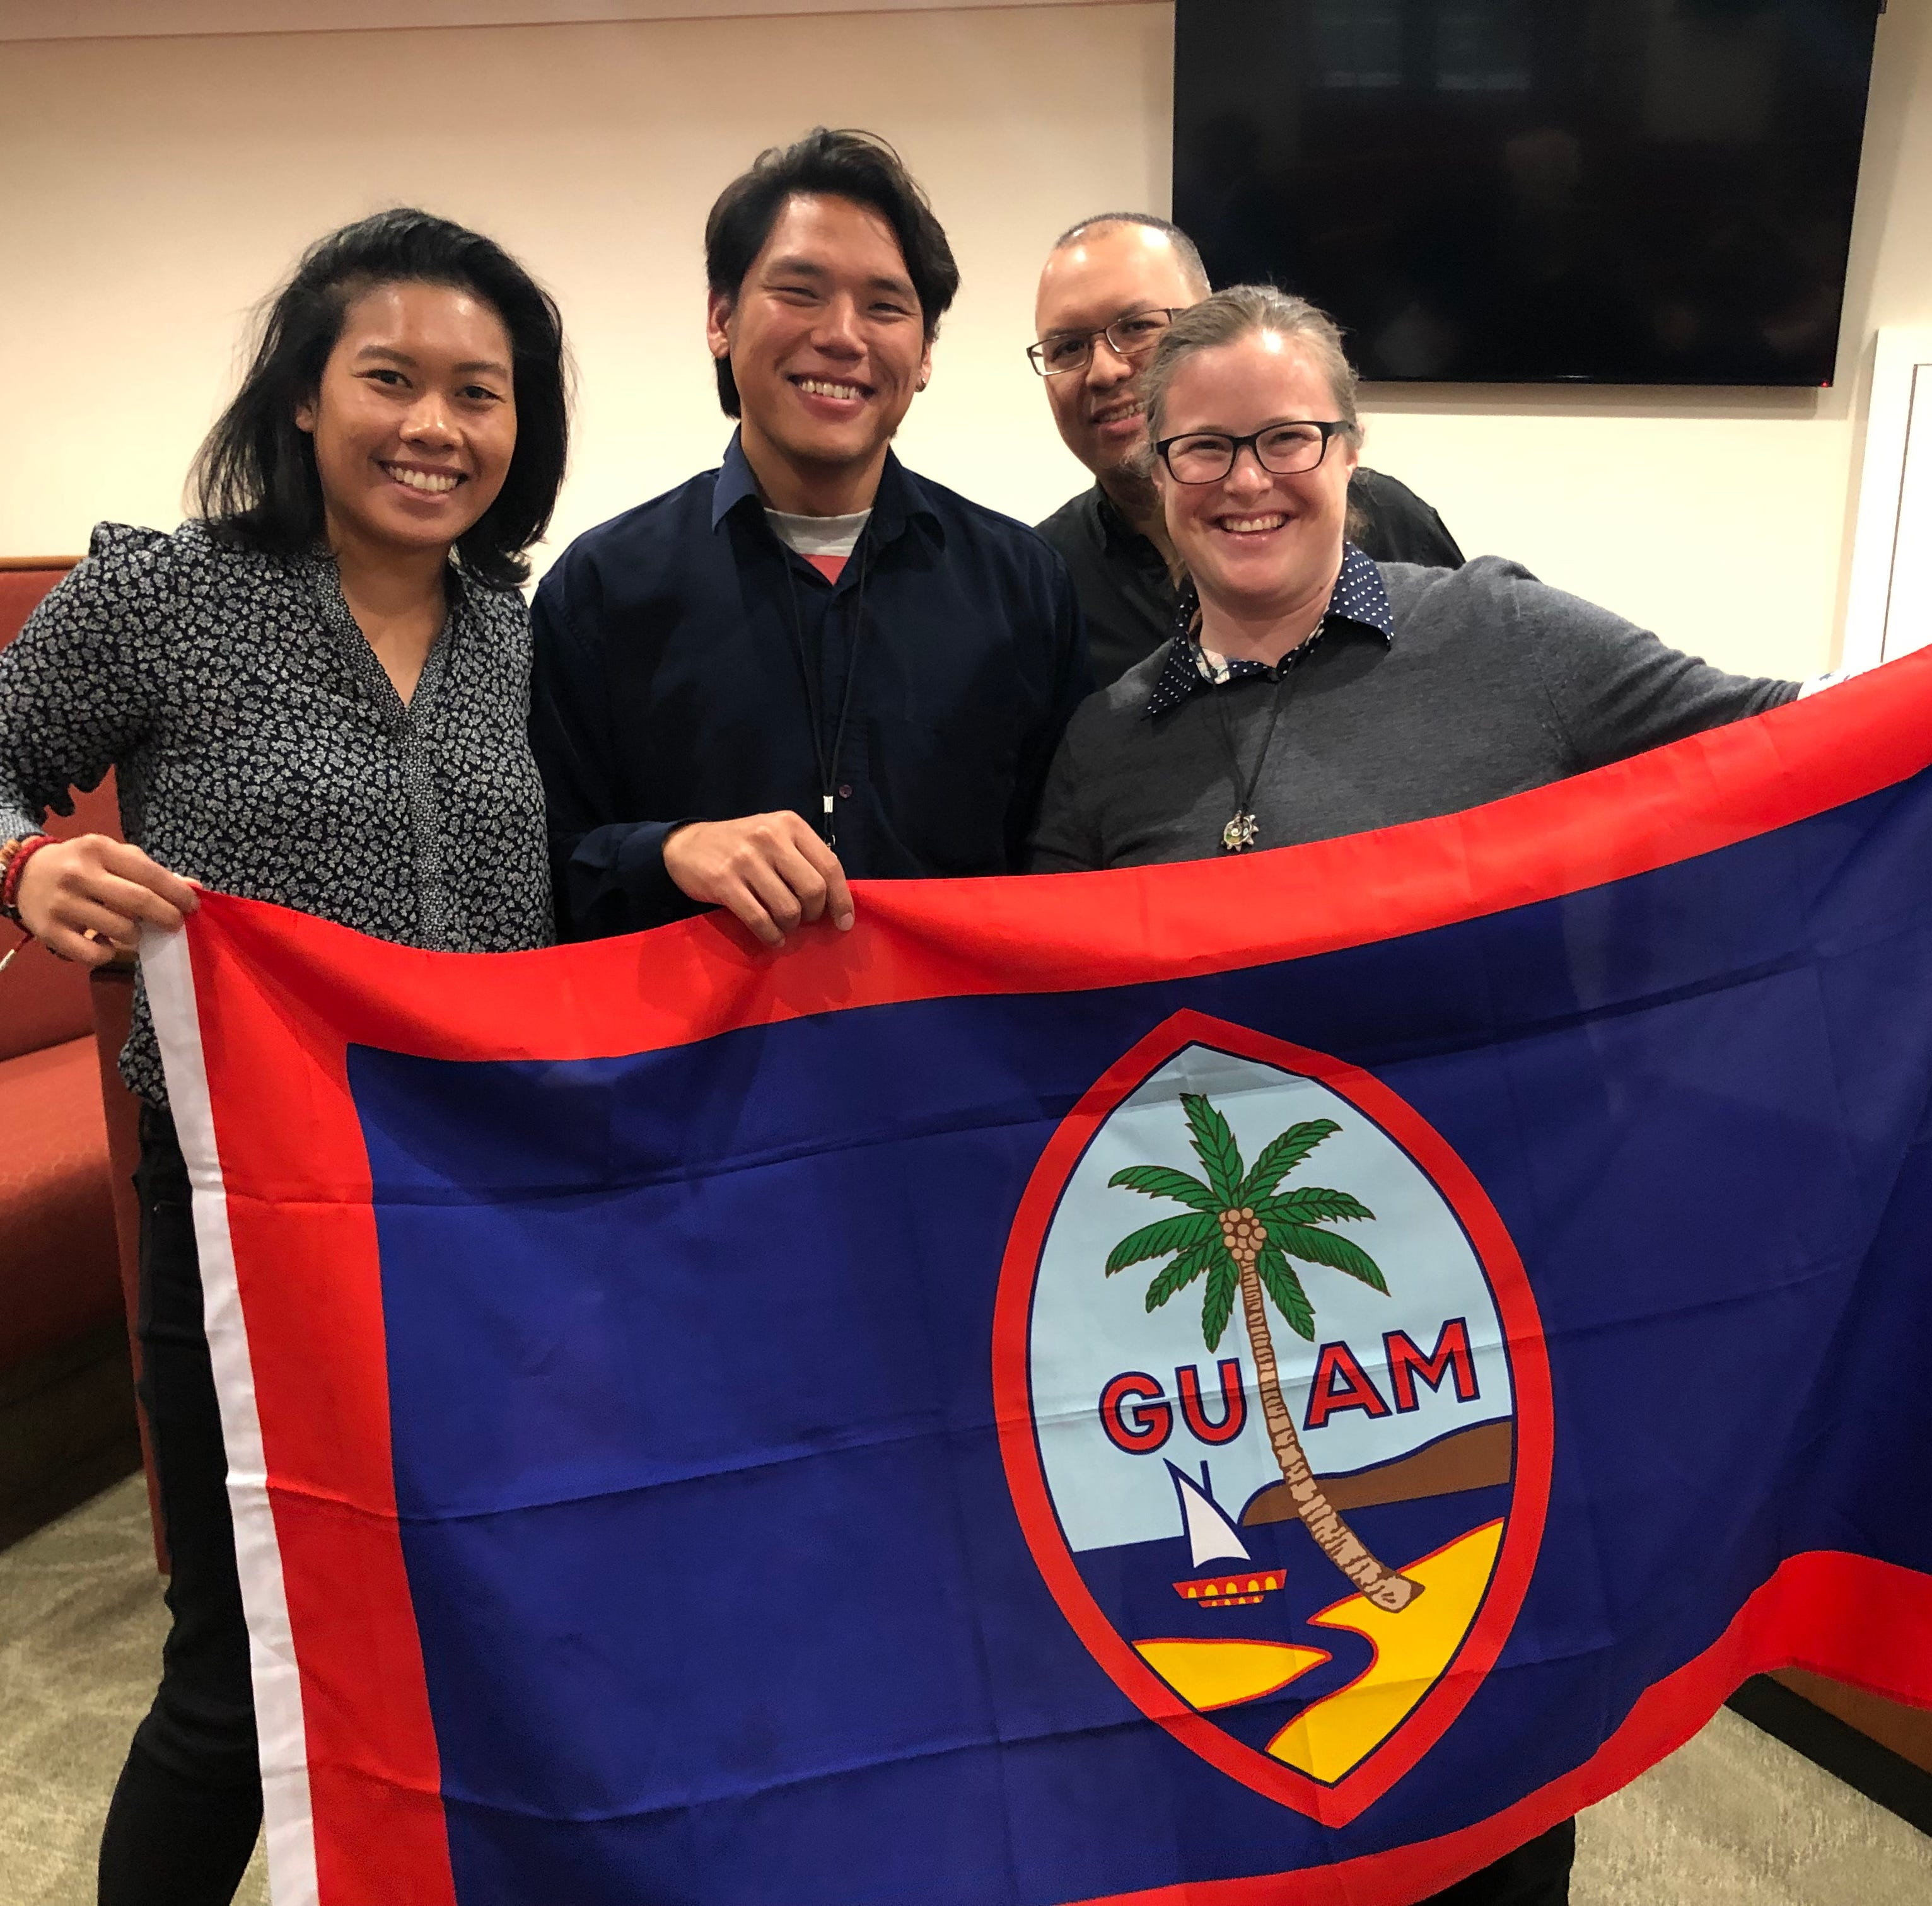 Four Guam scholars participate in Harvard history conference